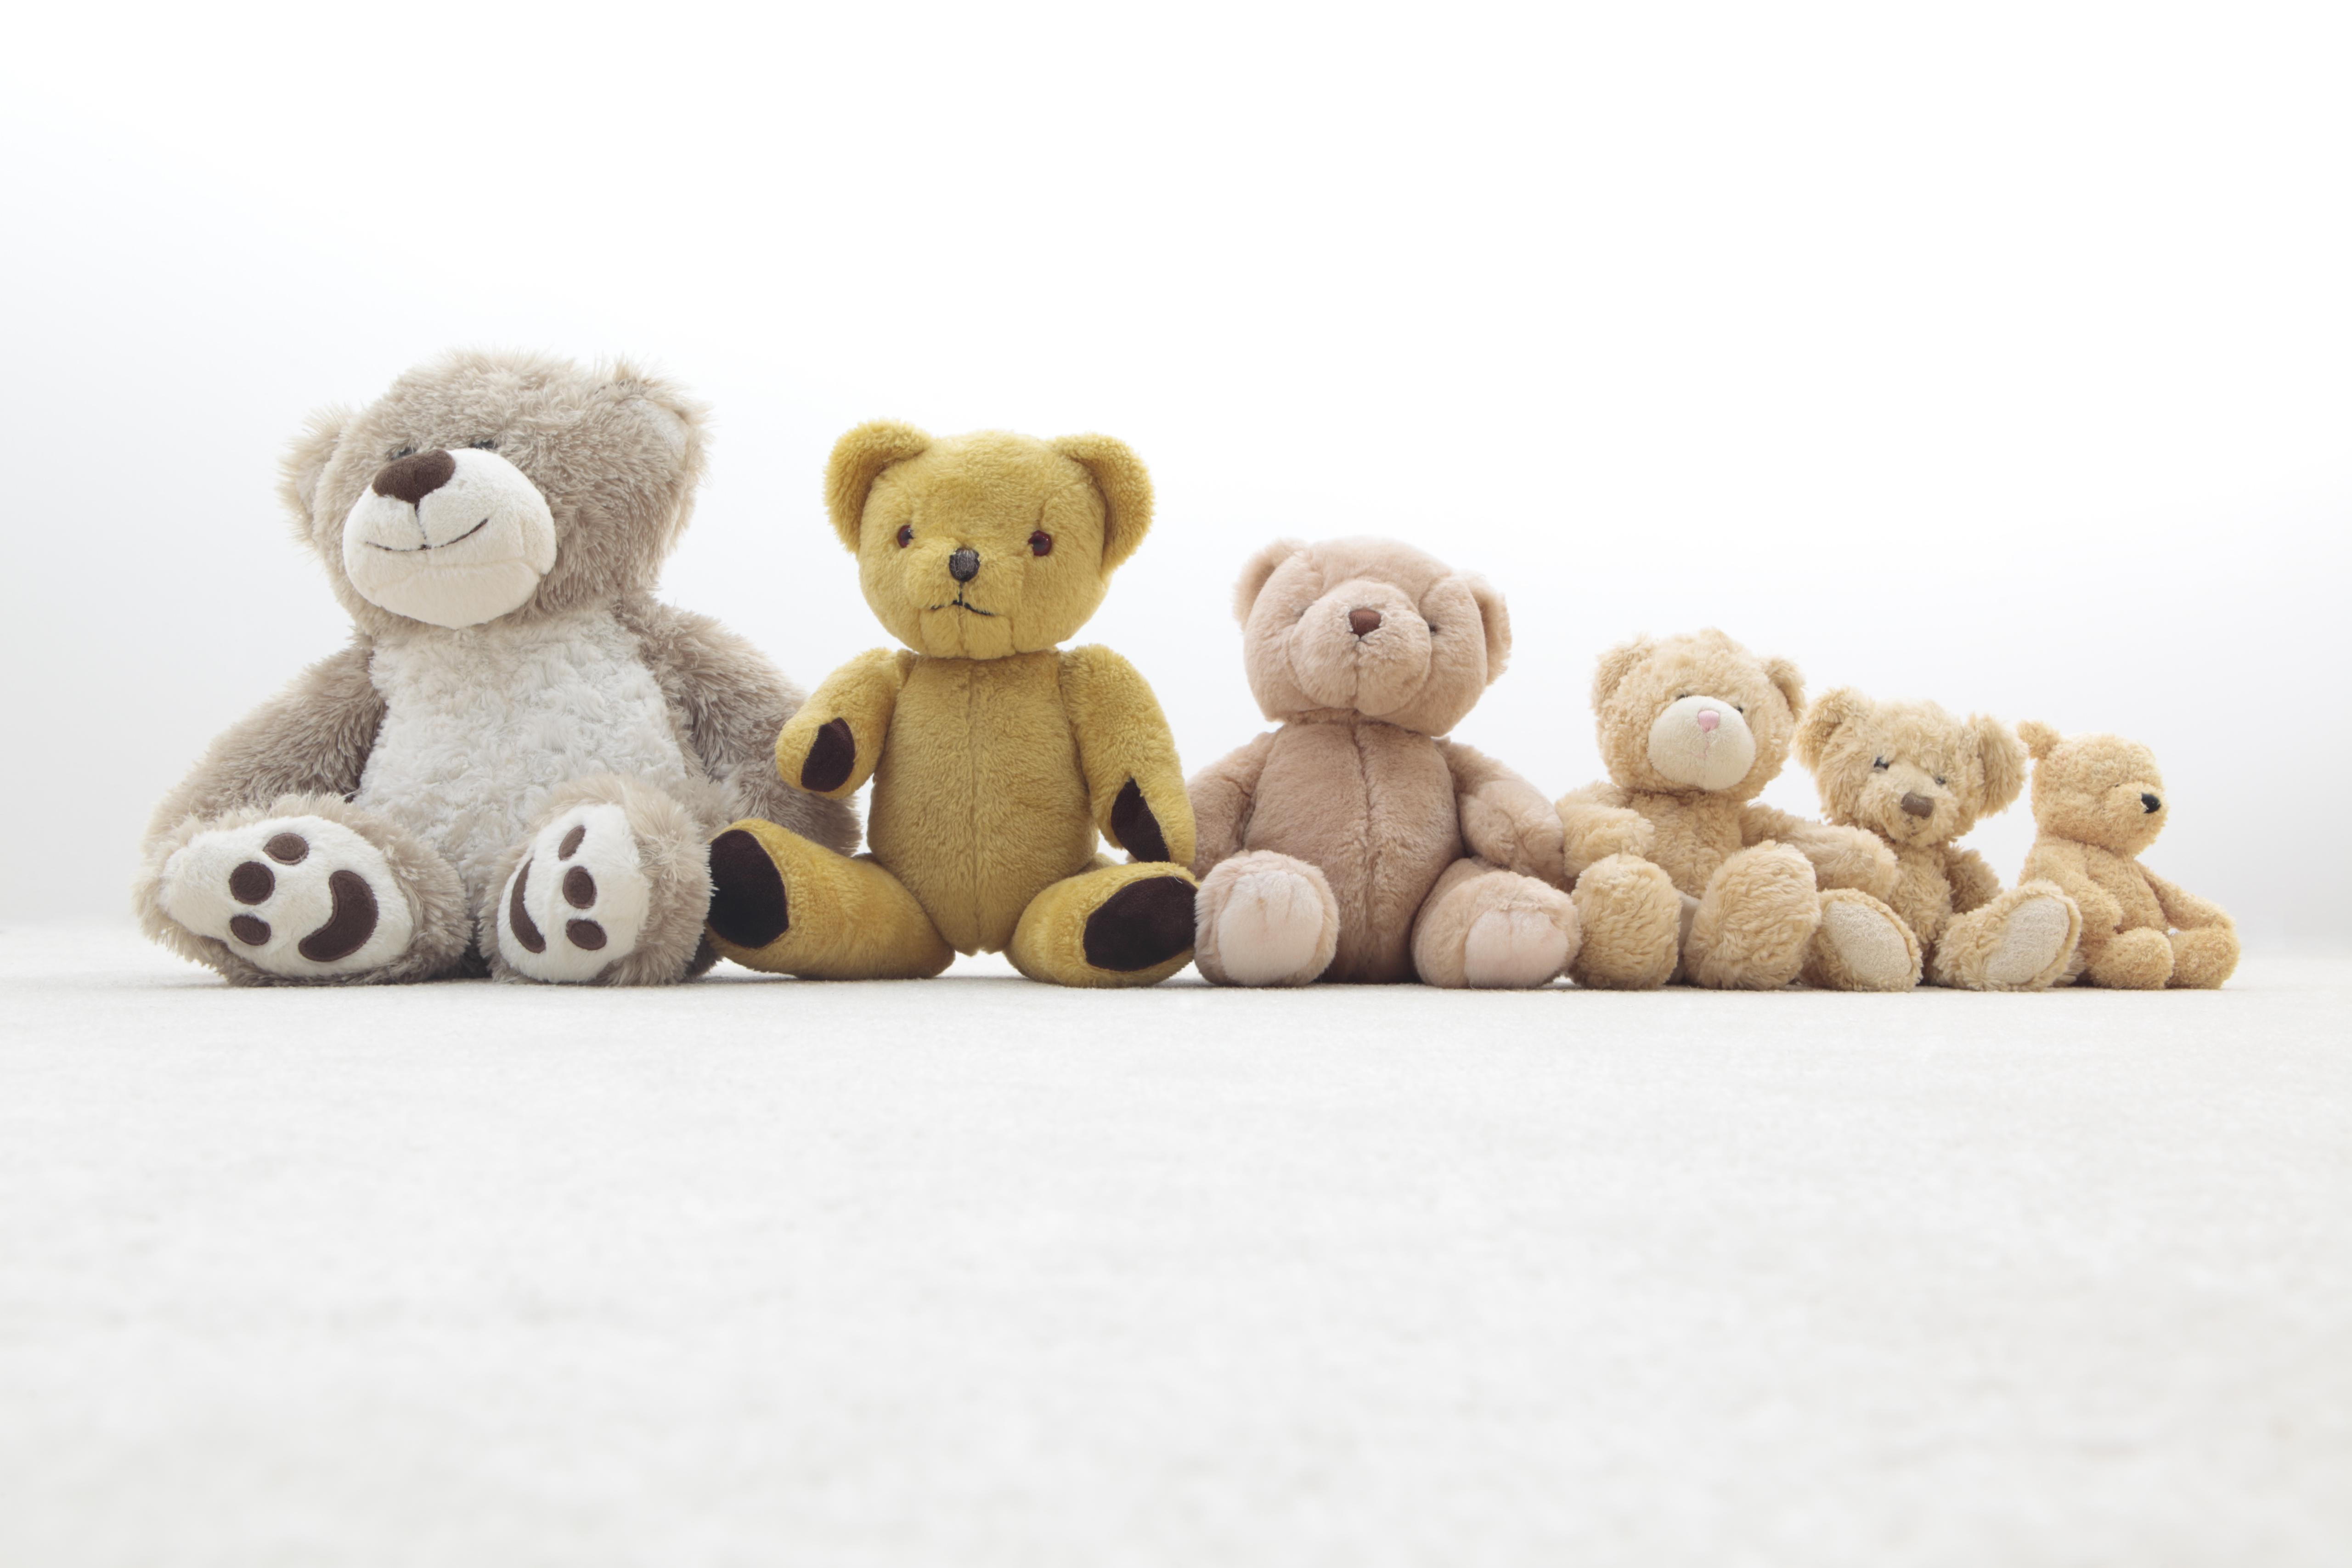 teddy bears in a row